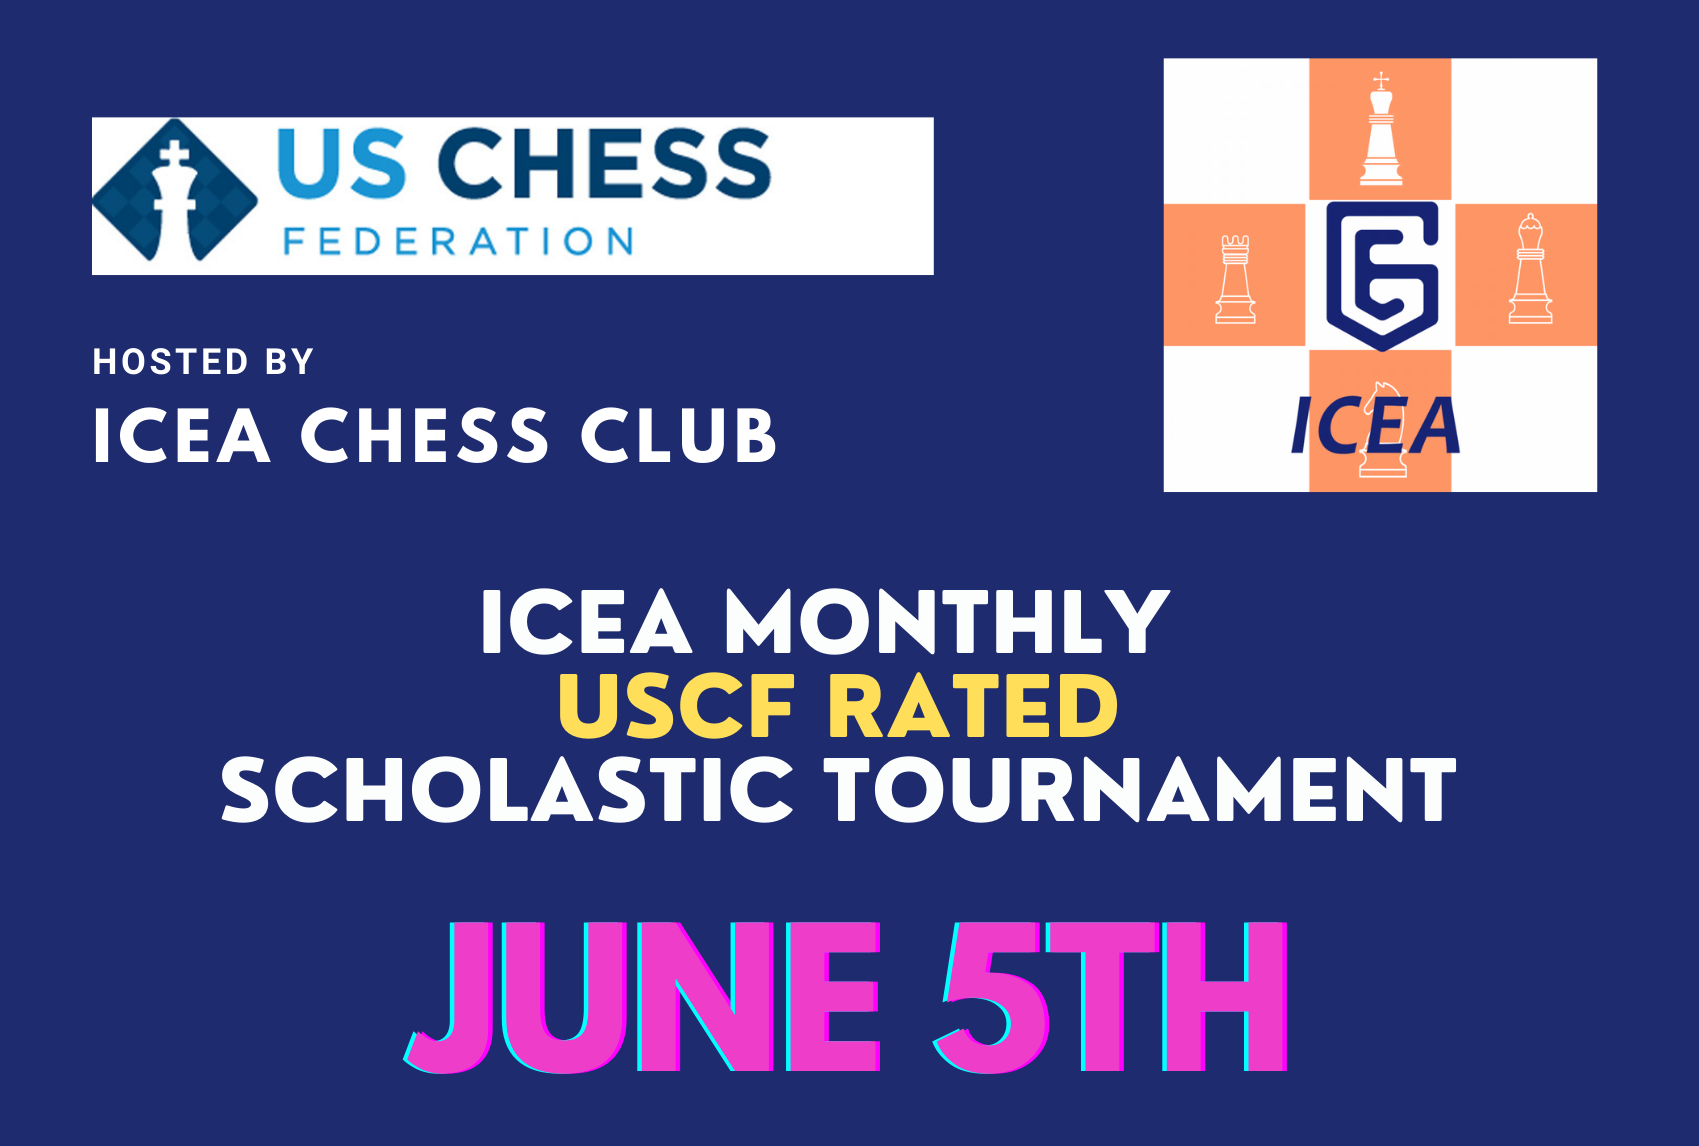 ICEA USCF-Rated Monthly Scholastic Online Tournament - June 5th